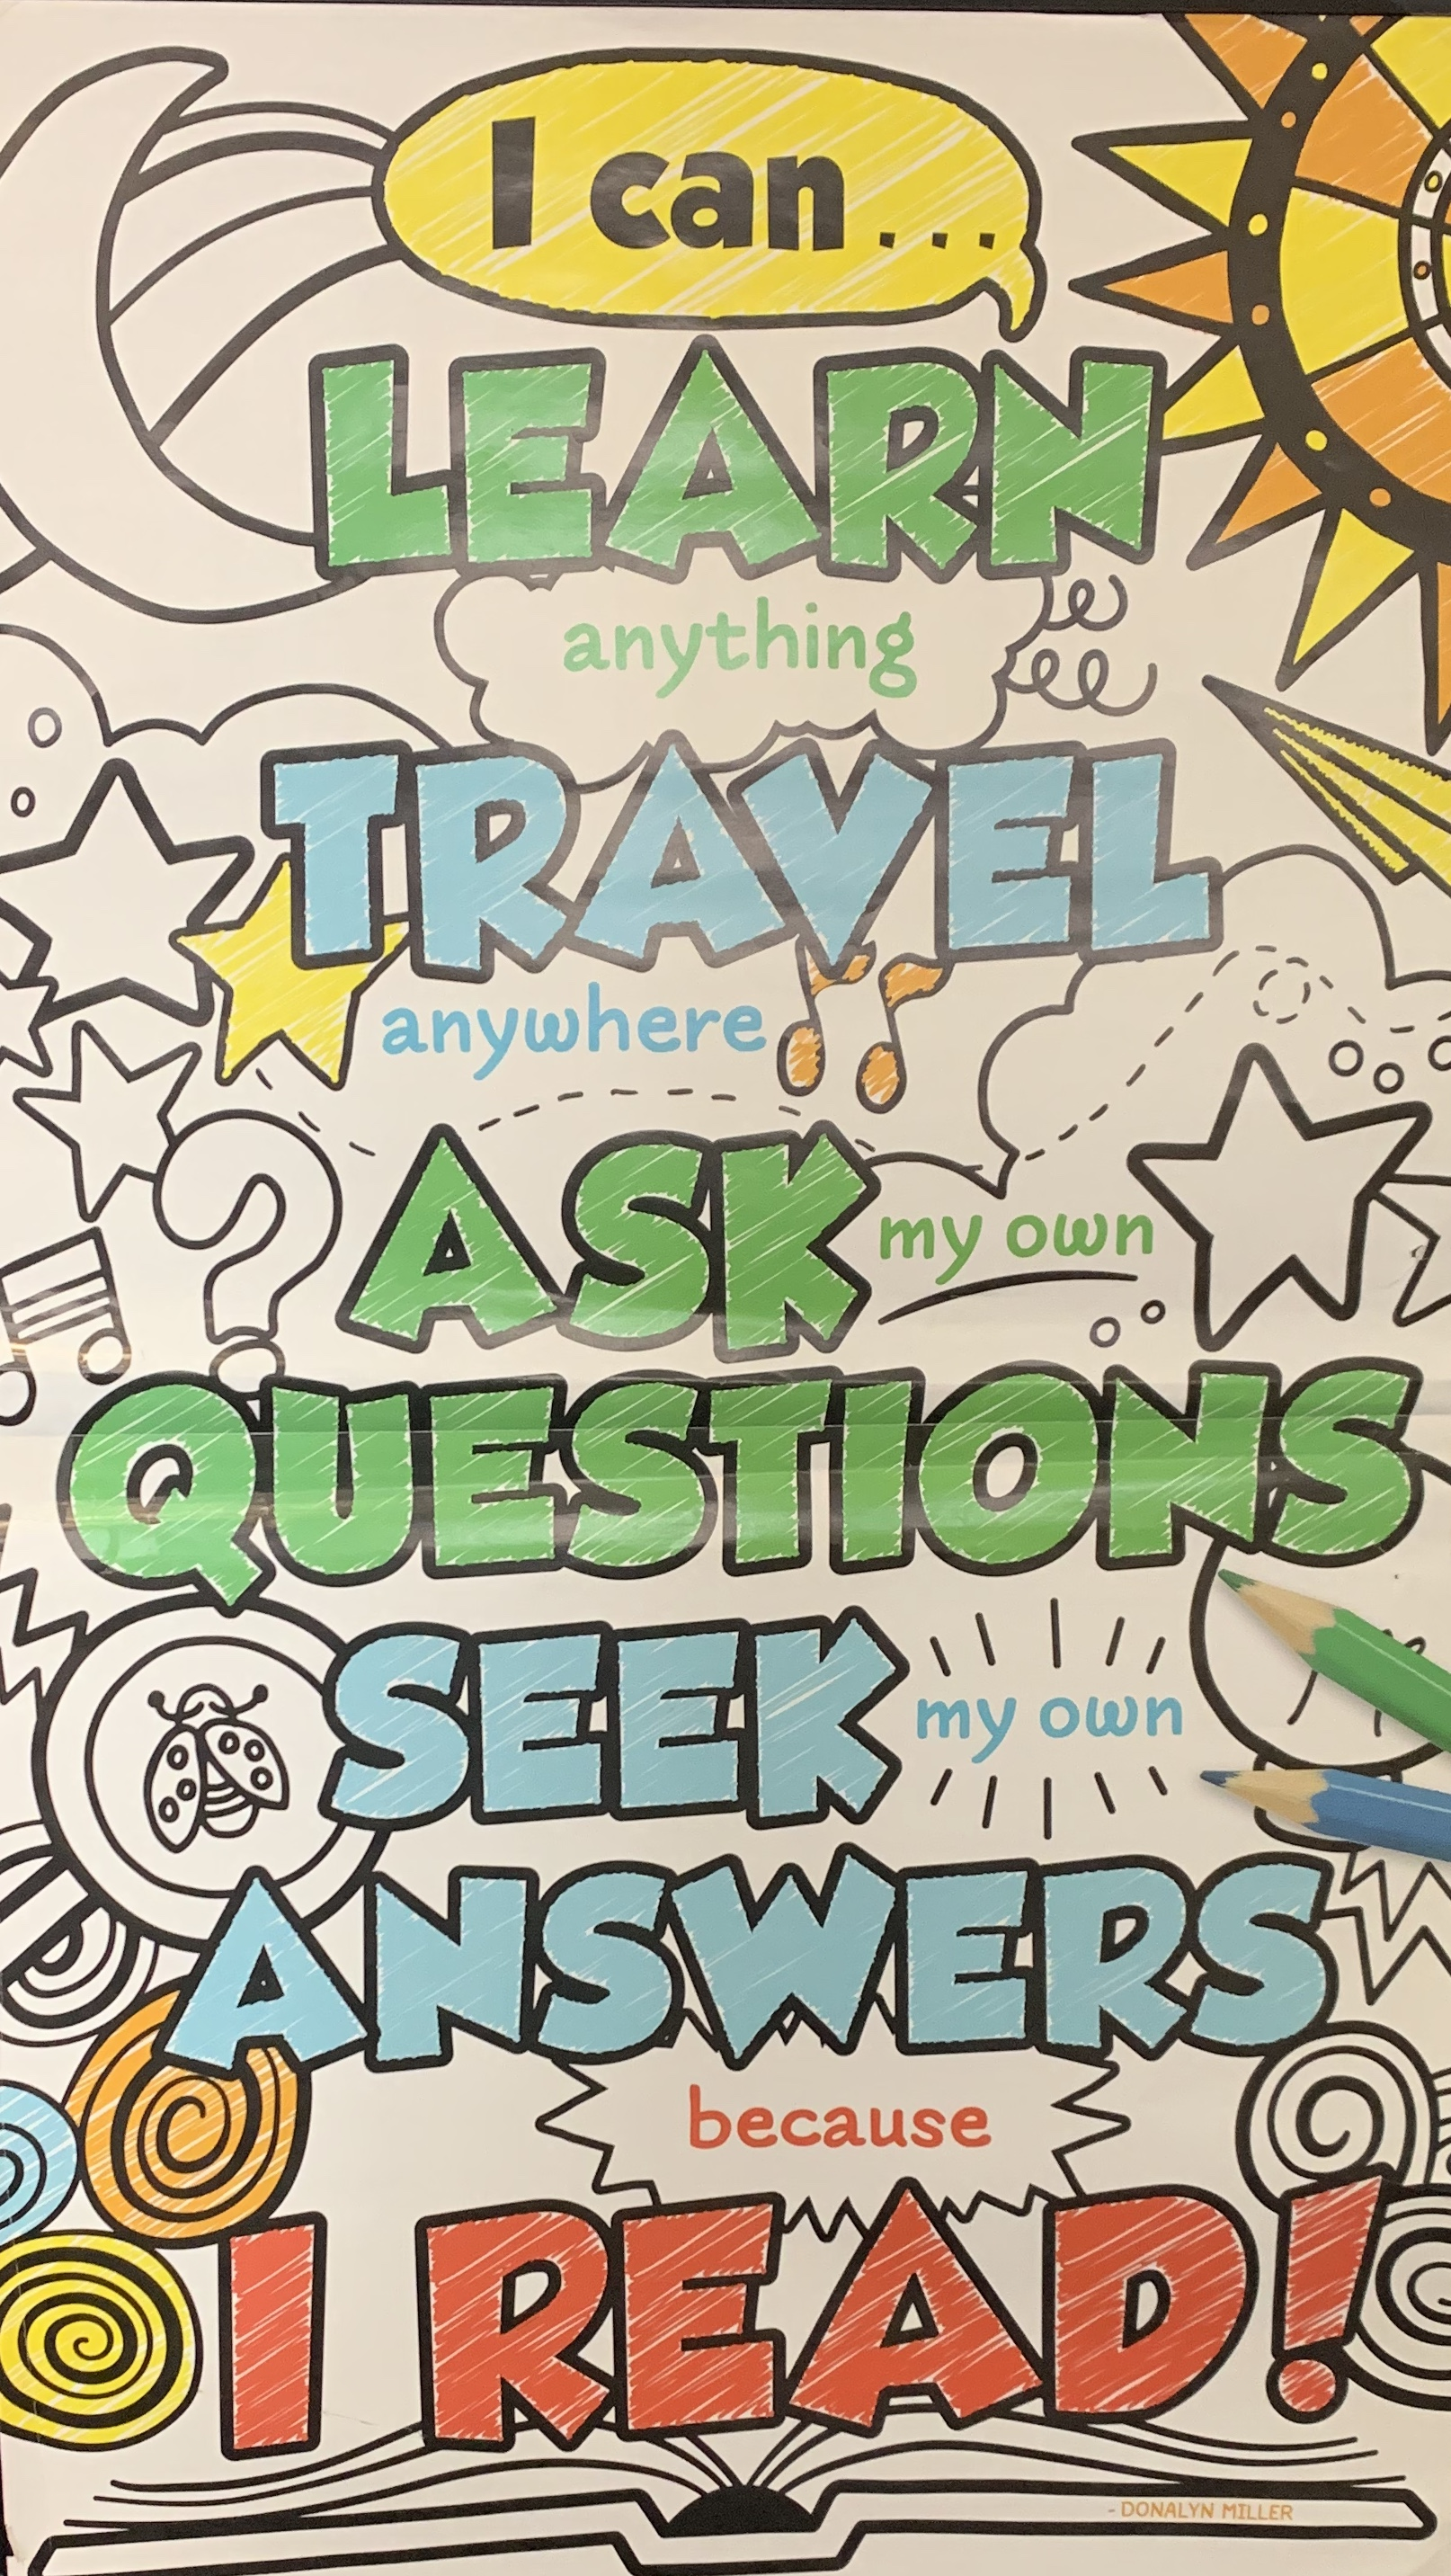 i can learn, travel, ask questions, seek answers book